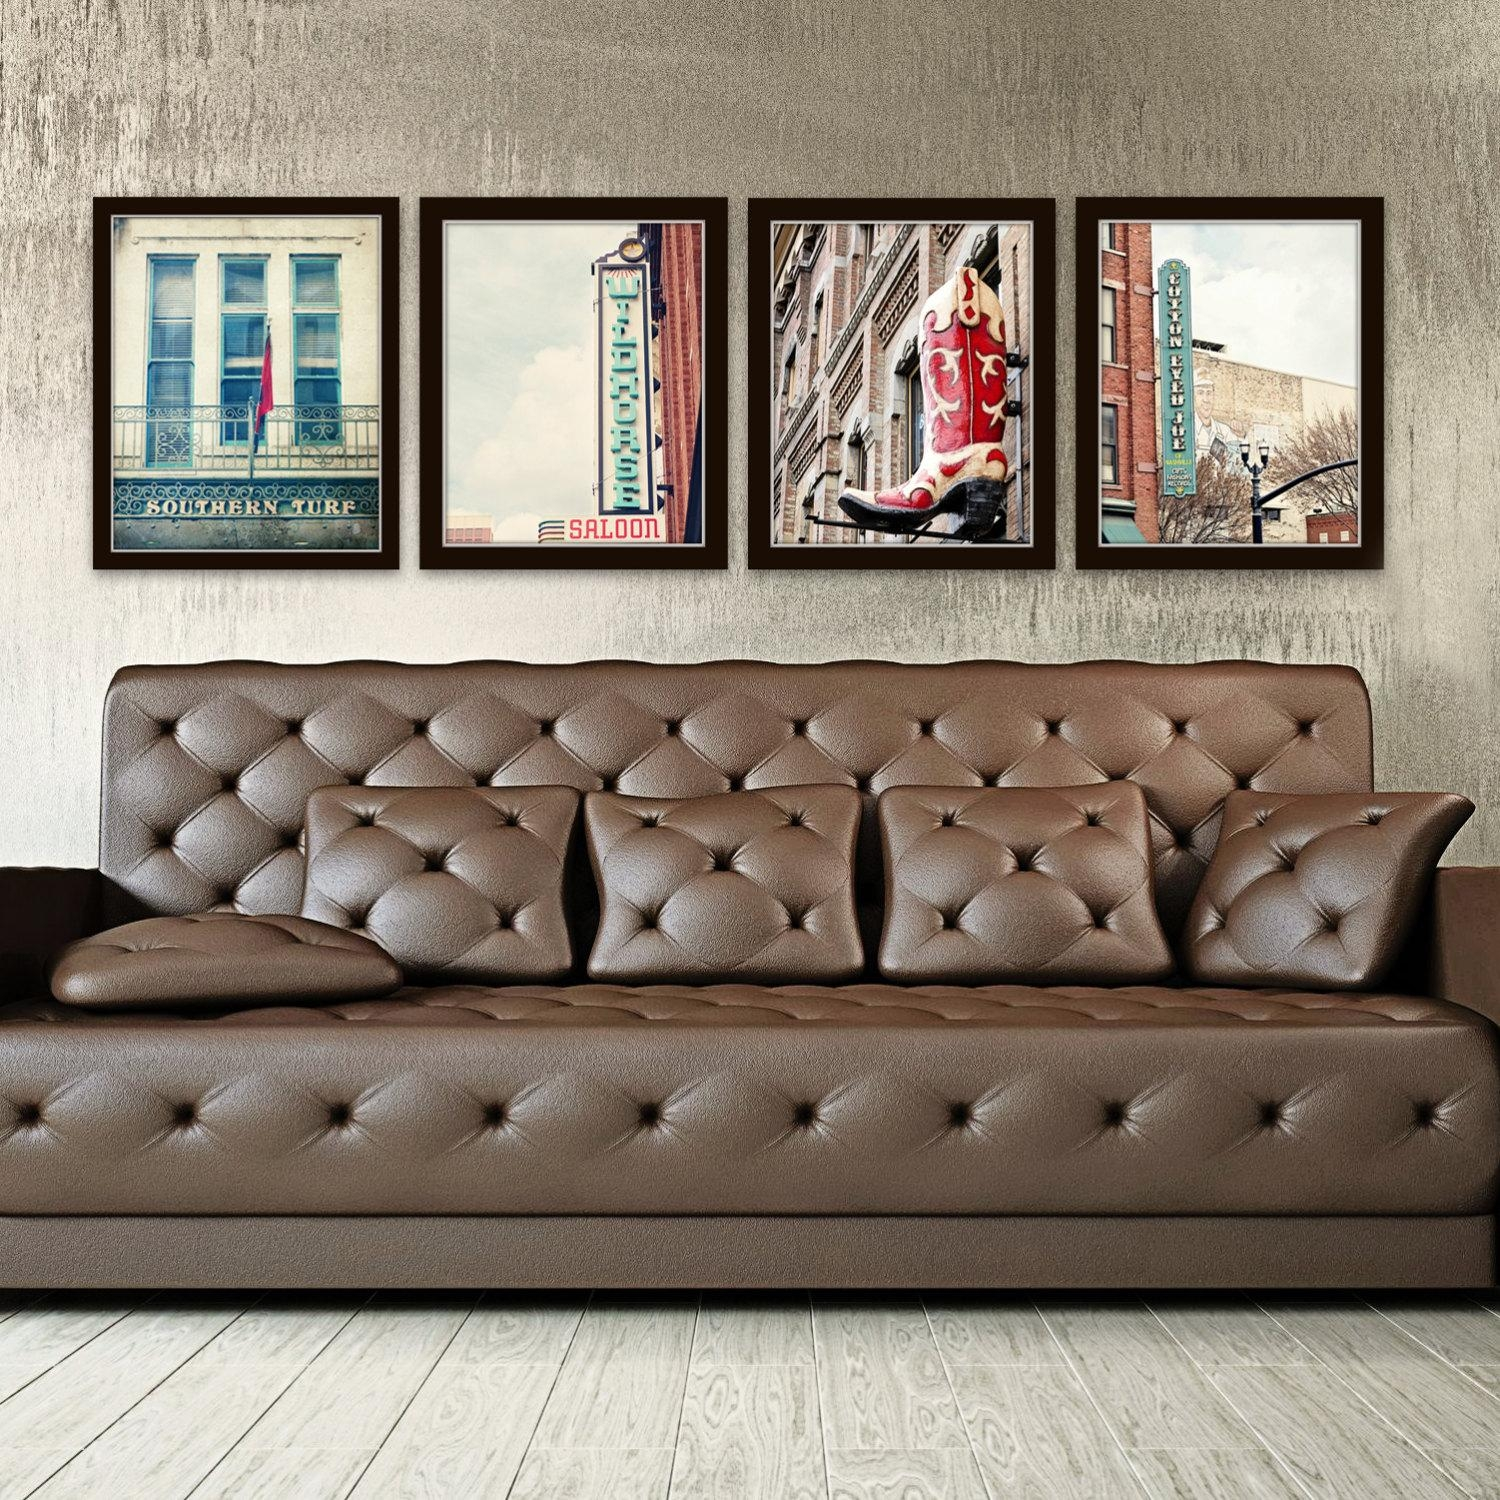 Nashville Wall Art Industrial Decor City Photography Set Of 4 Intended For Industrial Wall Art (View 3 of 20)